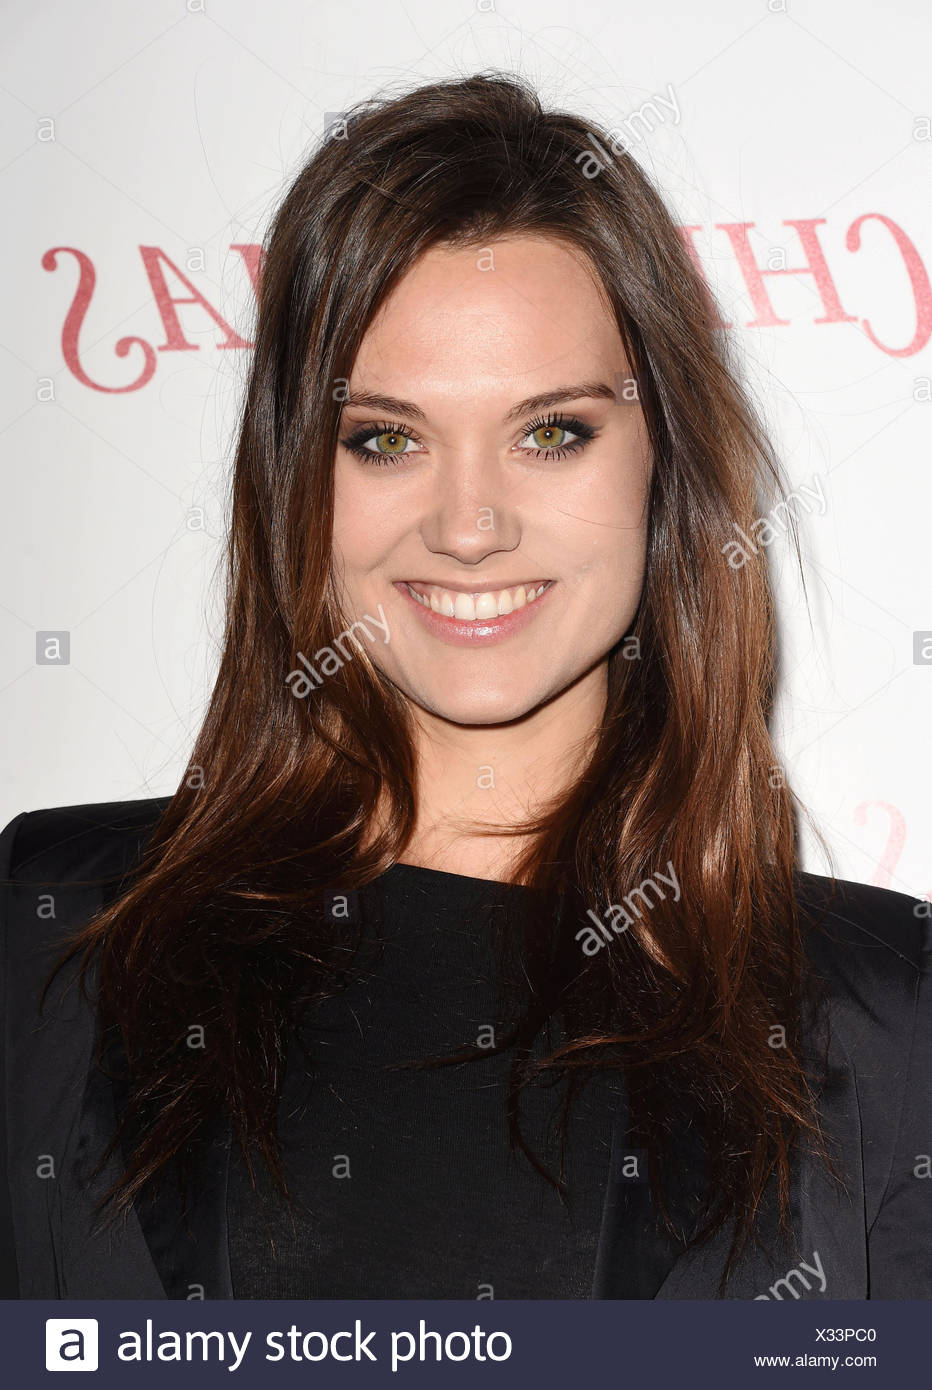 Model Laura James arrives at the premiere of Unstuck's 'Christmas Eve' at the ArcLight Hollywood on December 2, 2015 in Hollywood, California., Additional-Rights-Clearances-NA - Stock Image